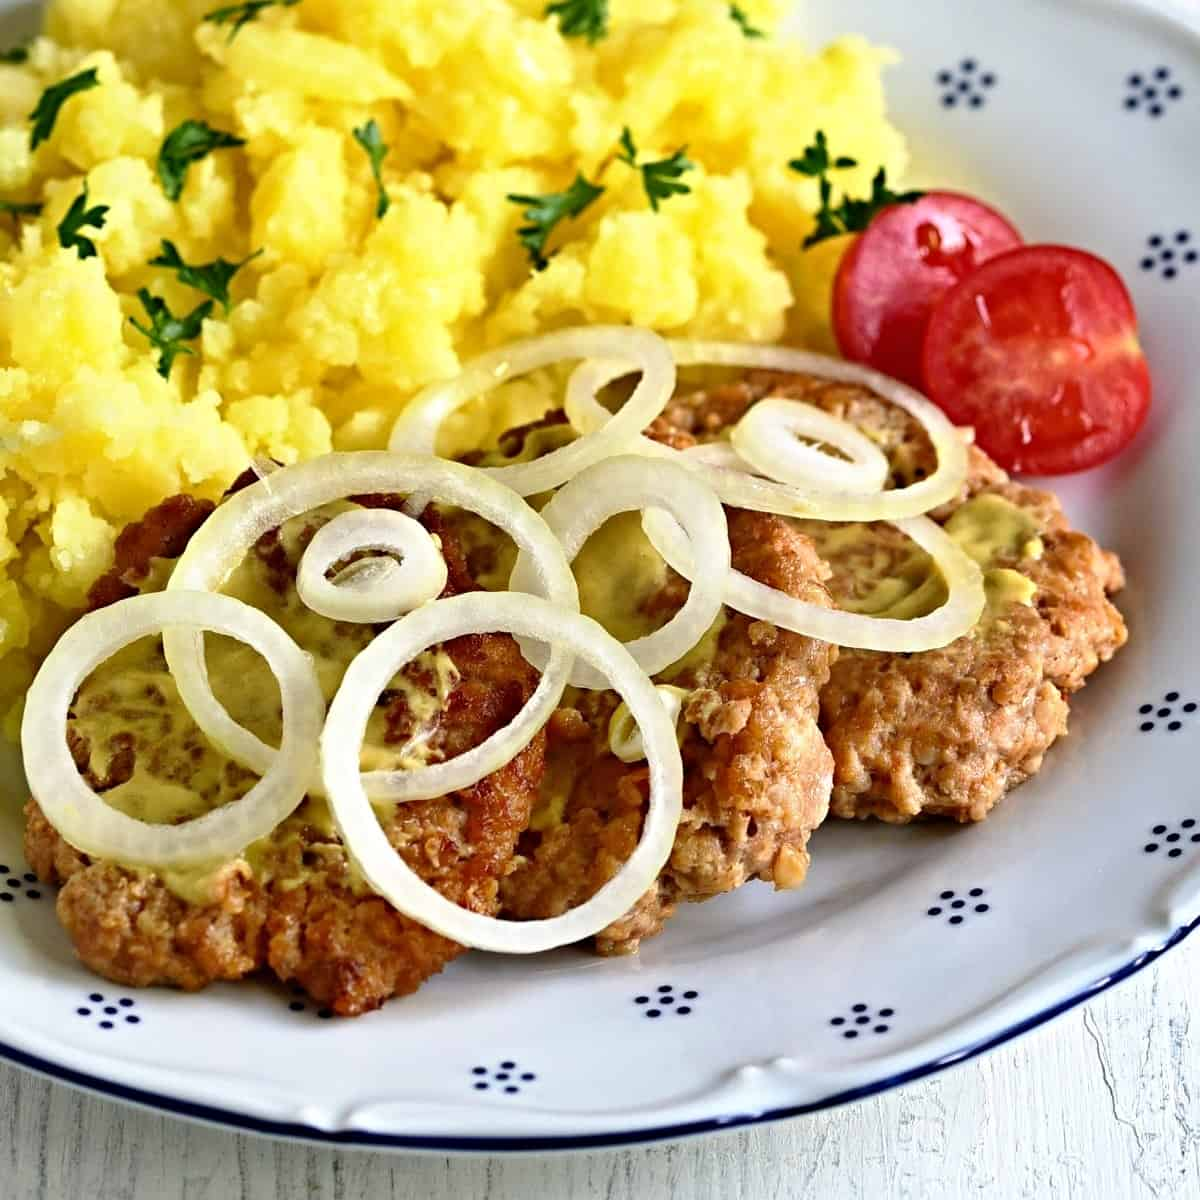 pork patties served with onion circles and potatoes